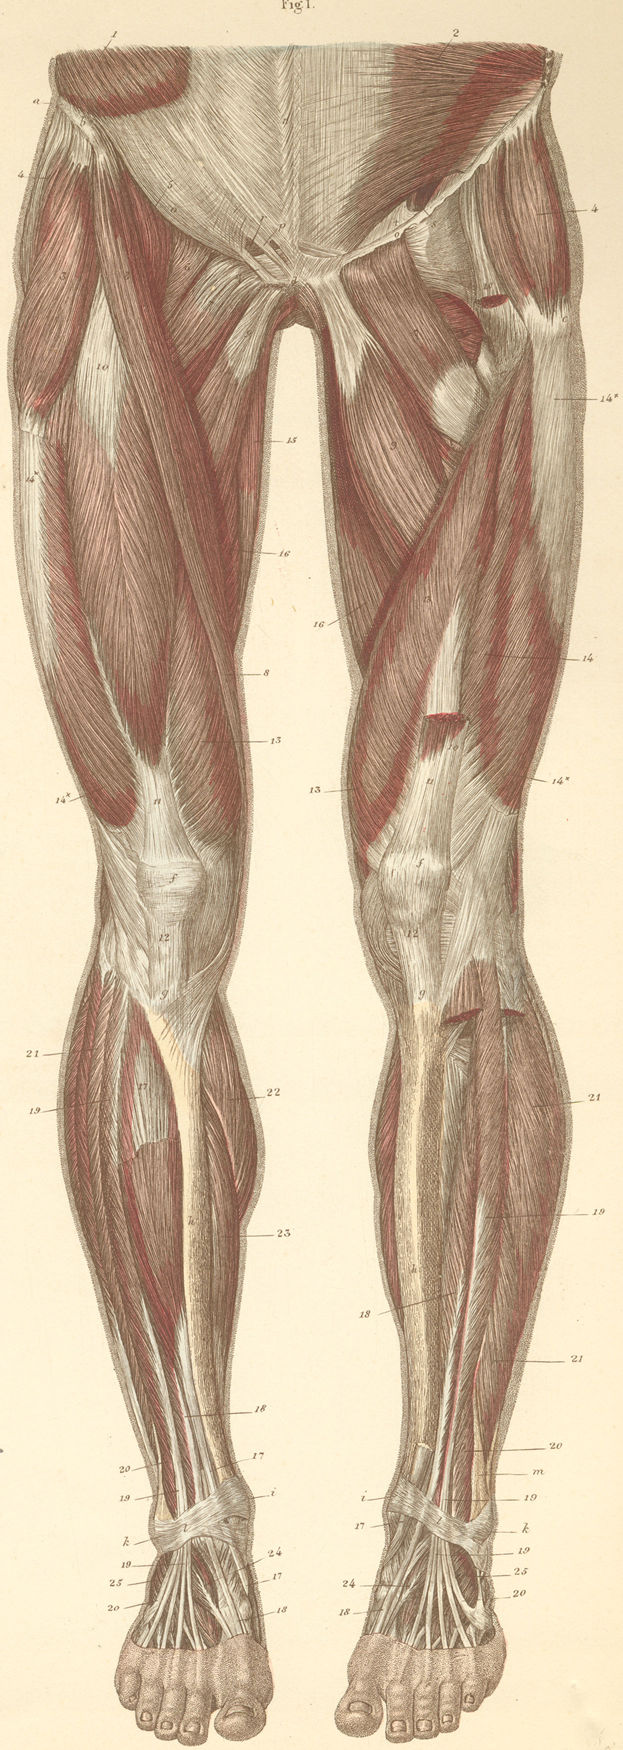 Anatomy Atlases: Atlas of Human Anatomy: Plate 14: Figure 1